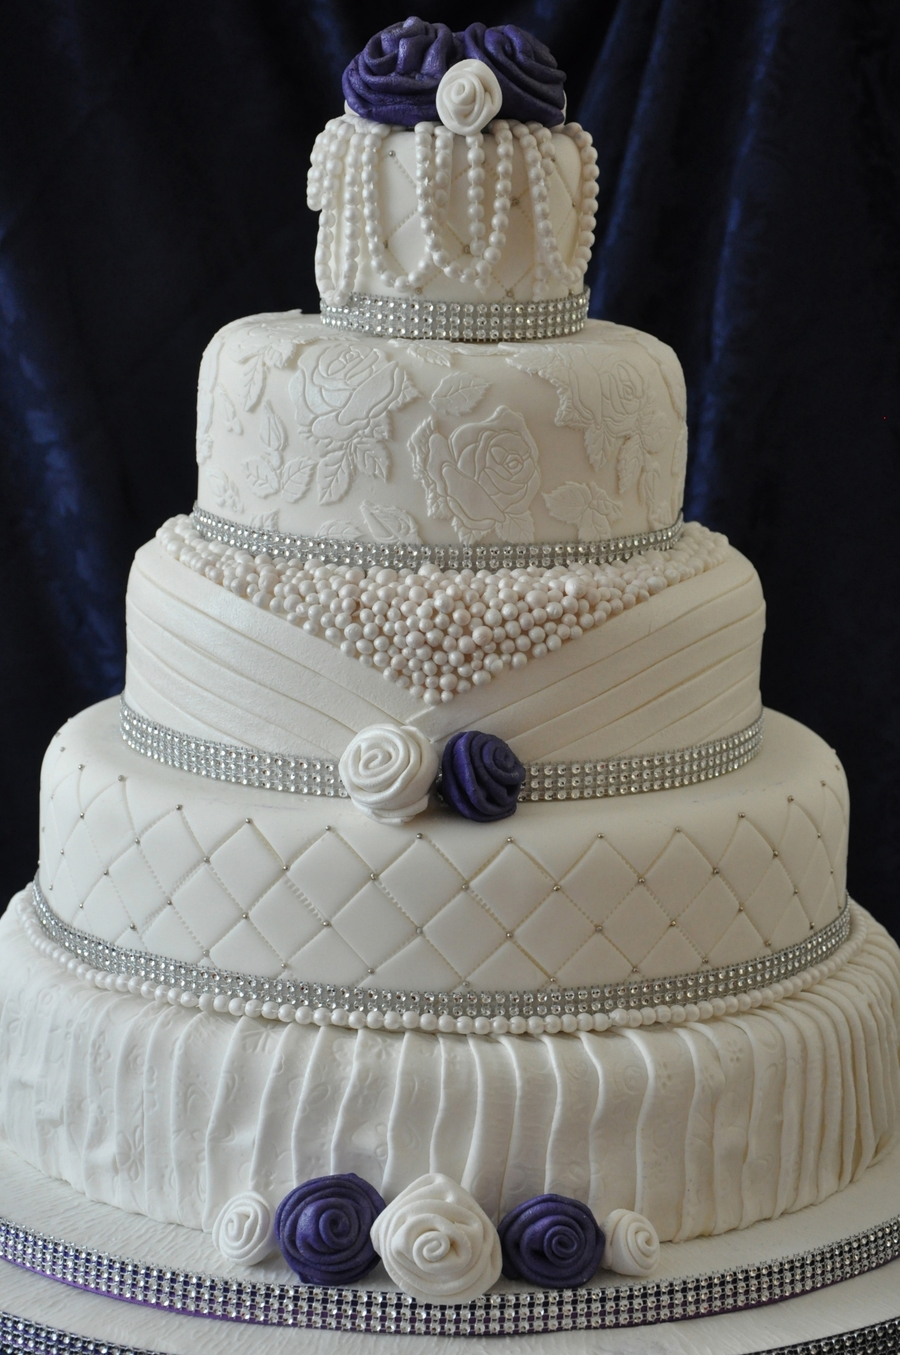 5 Tier Cake With Lace Effects Ribbon Roses And Pearls on Cake Central